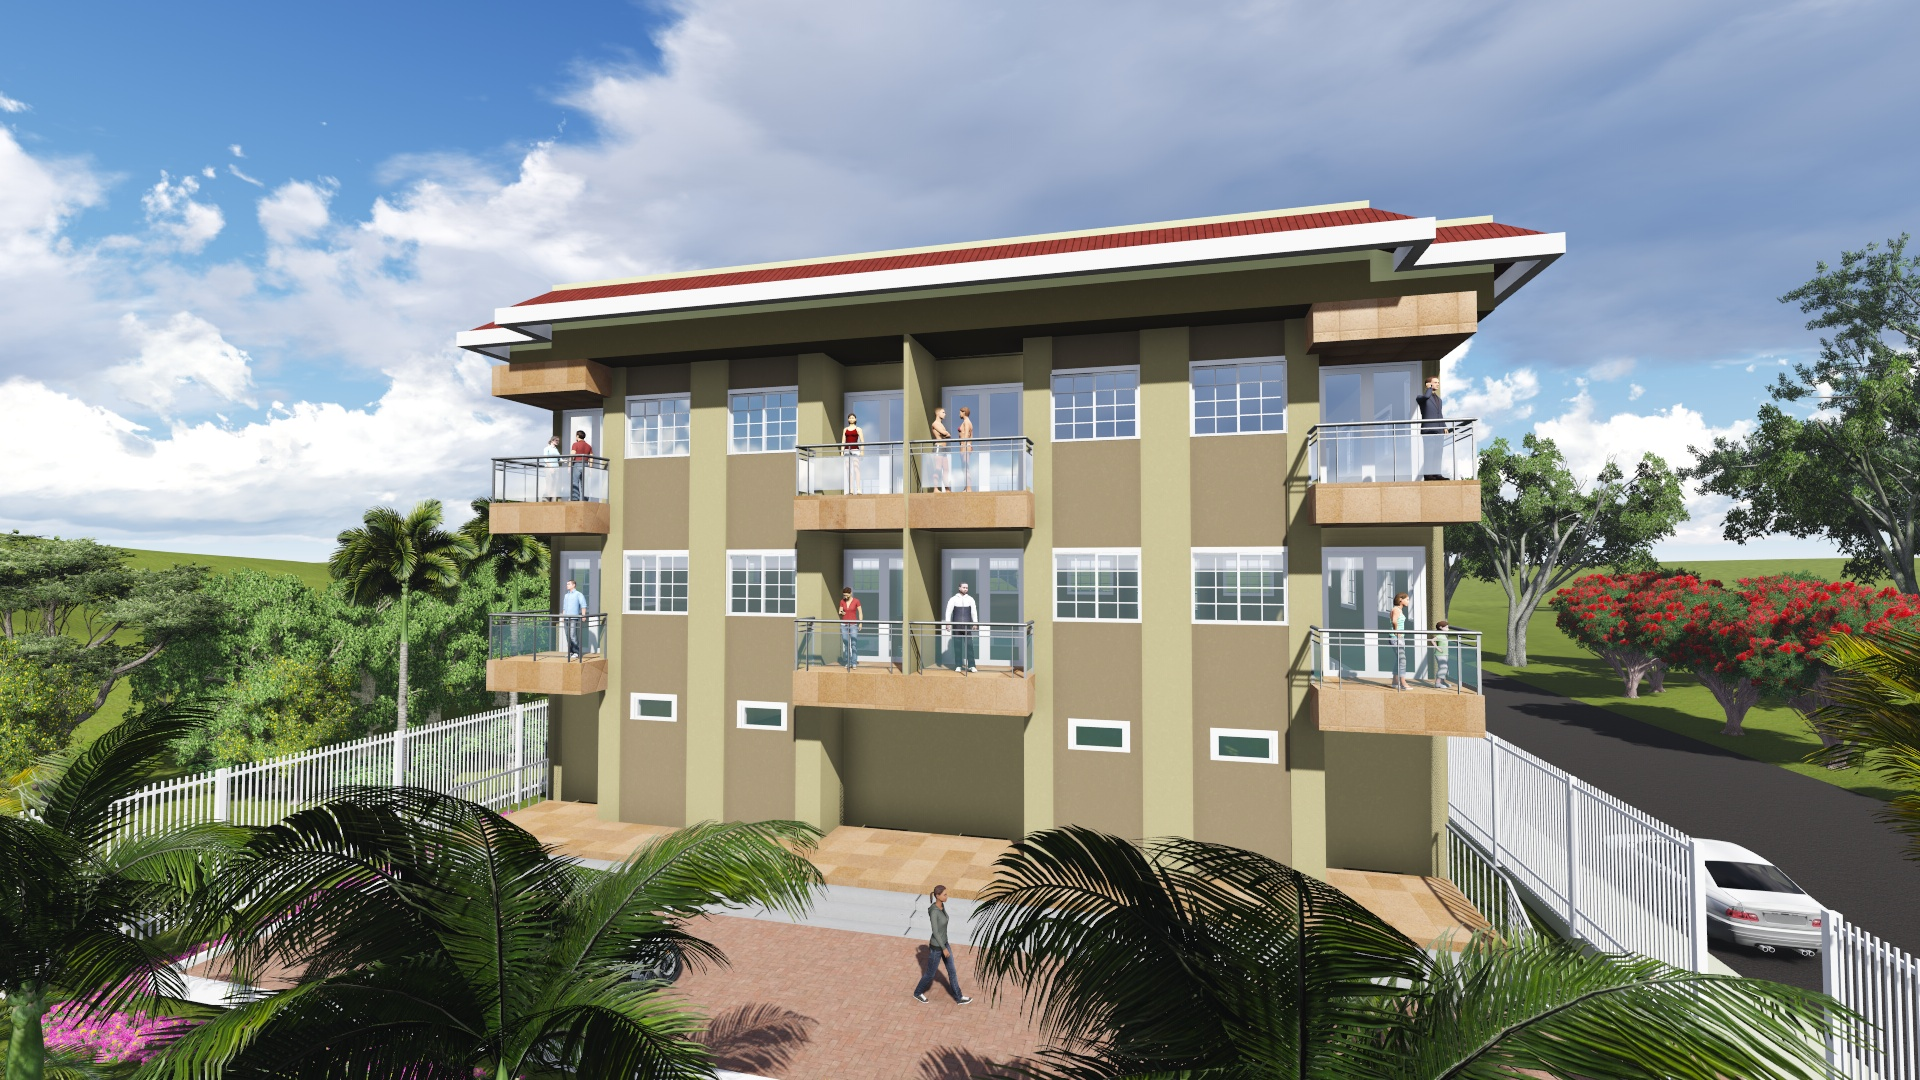 Retire in Belize at the Diplomat, a new development in Belize City